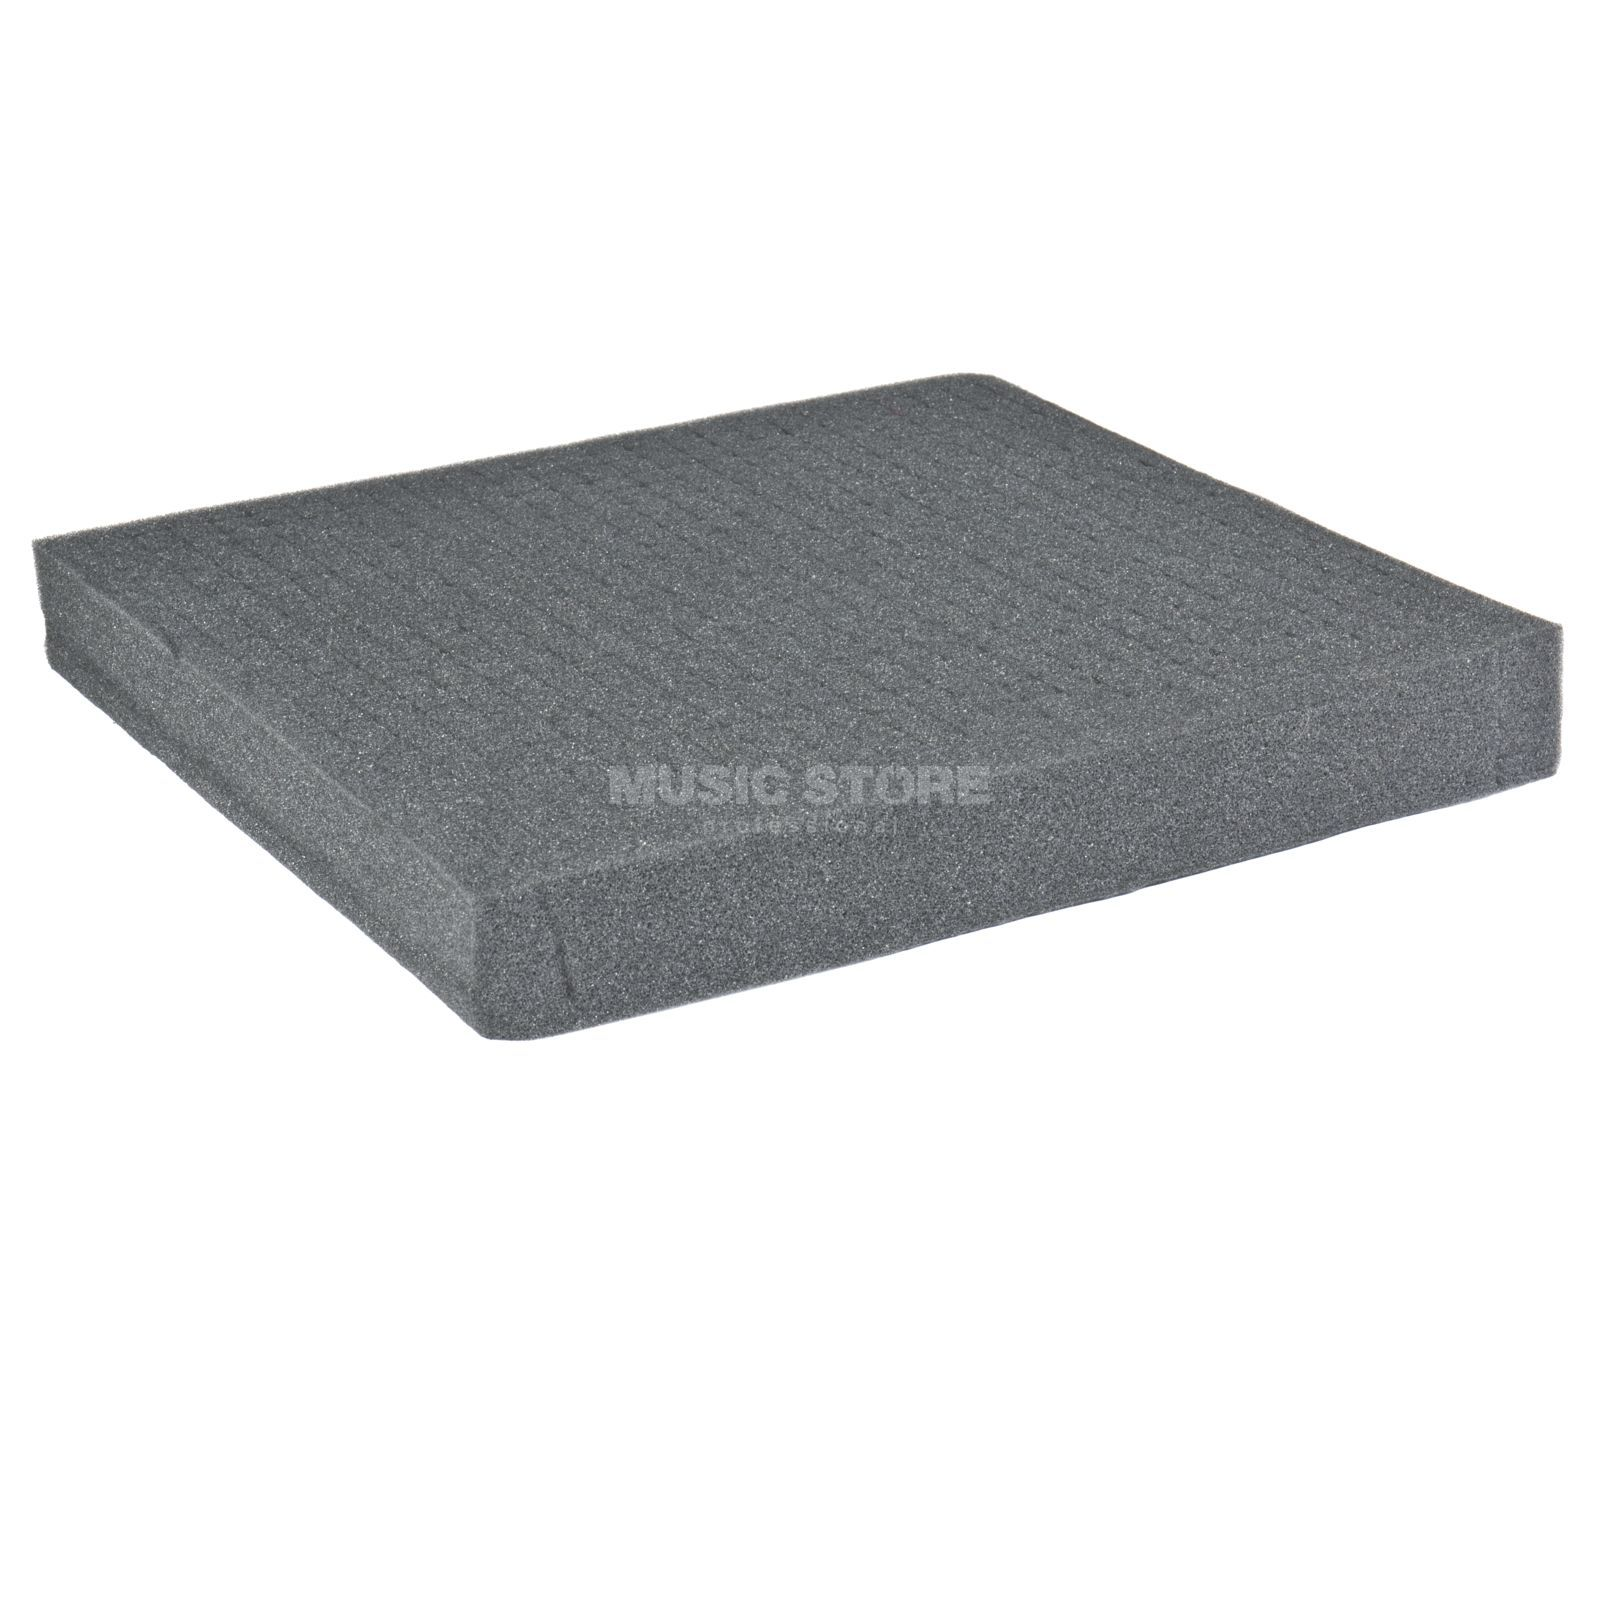 MUSIC STORE 2U Block Foam Rack Drawer Inlay (Grey) Product Image